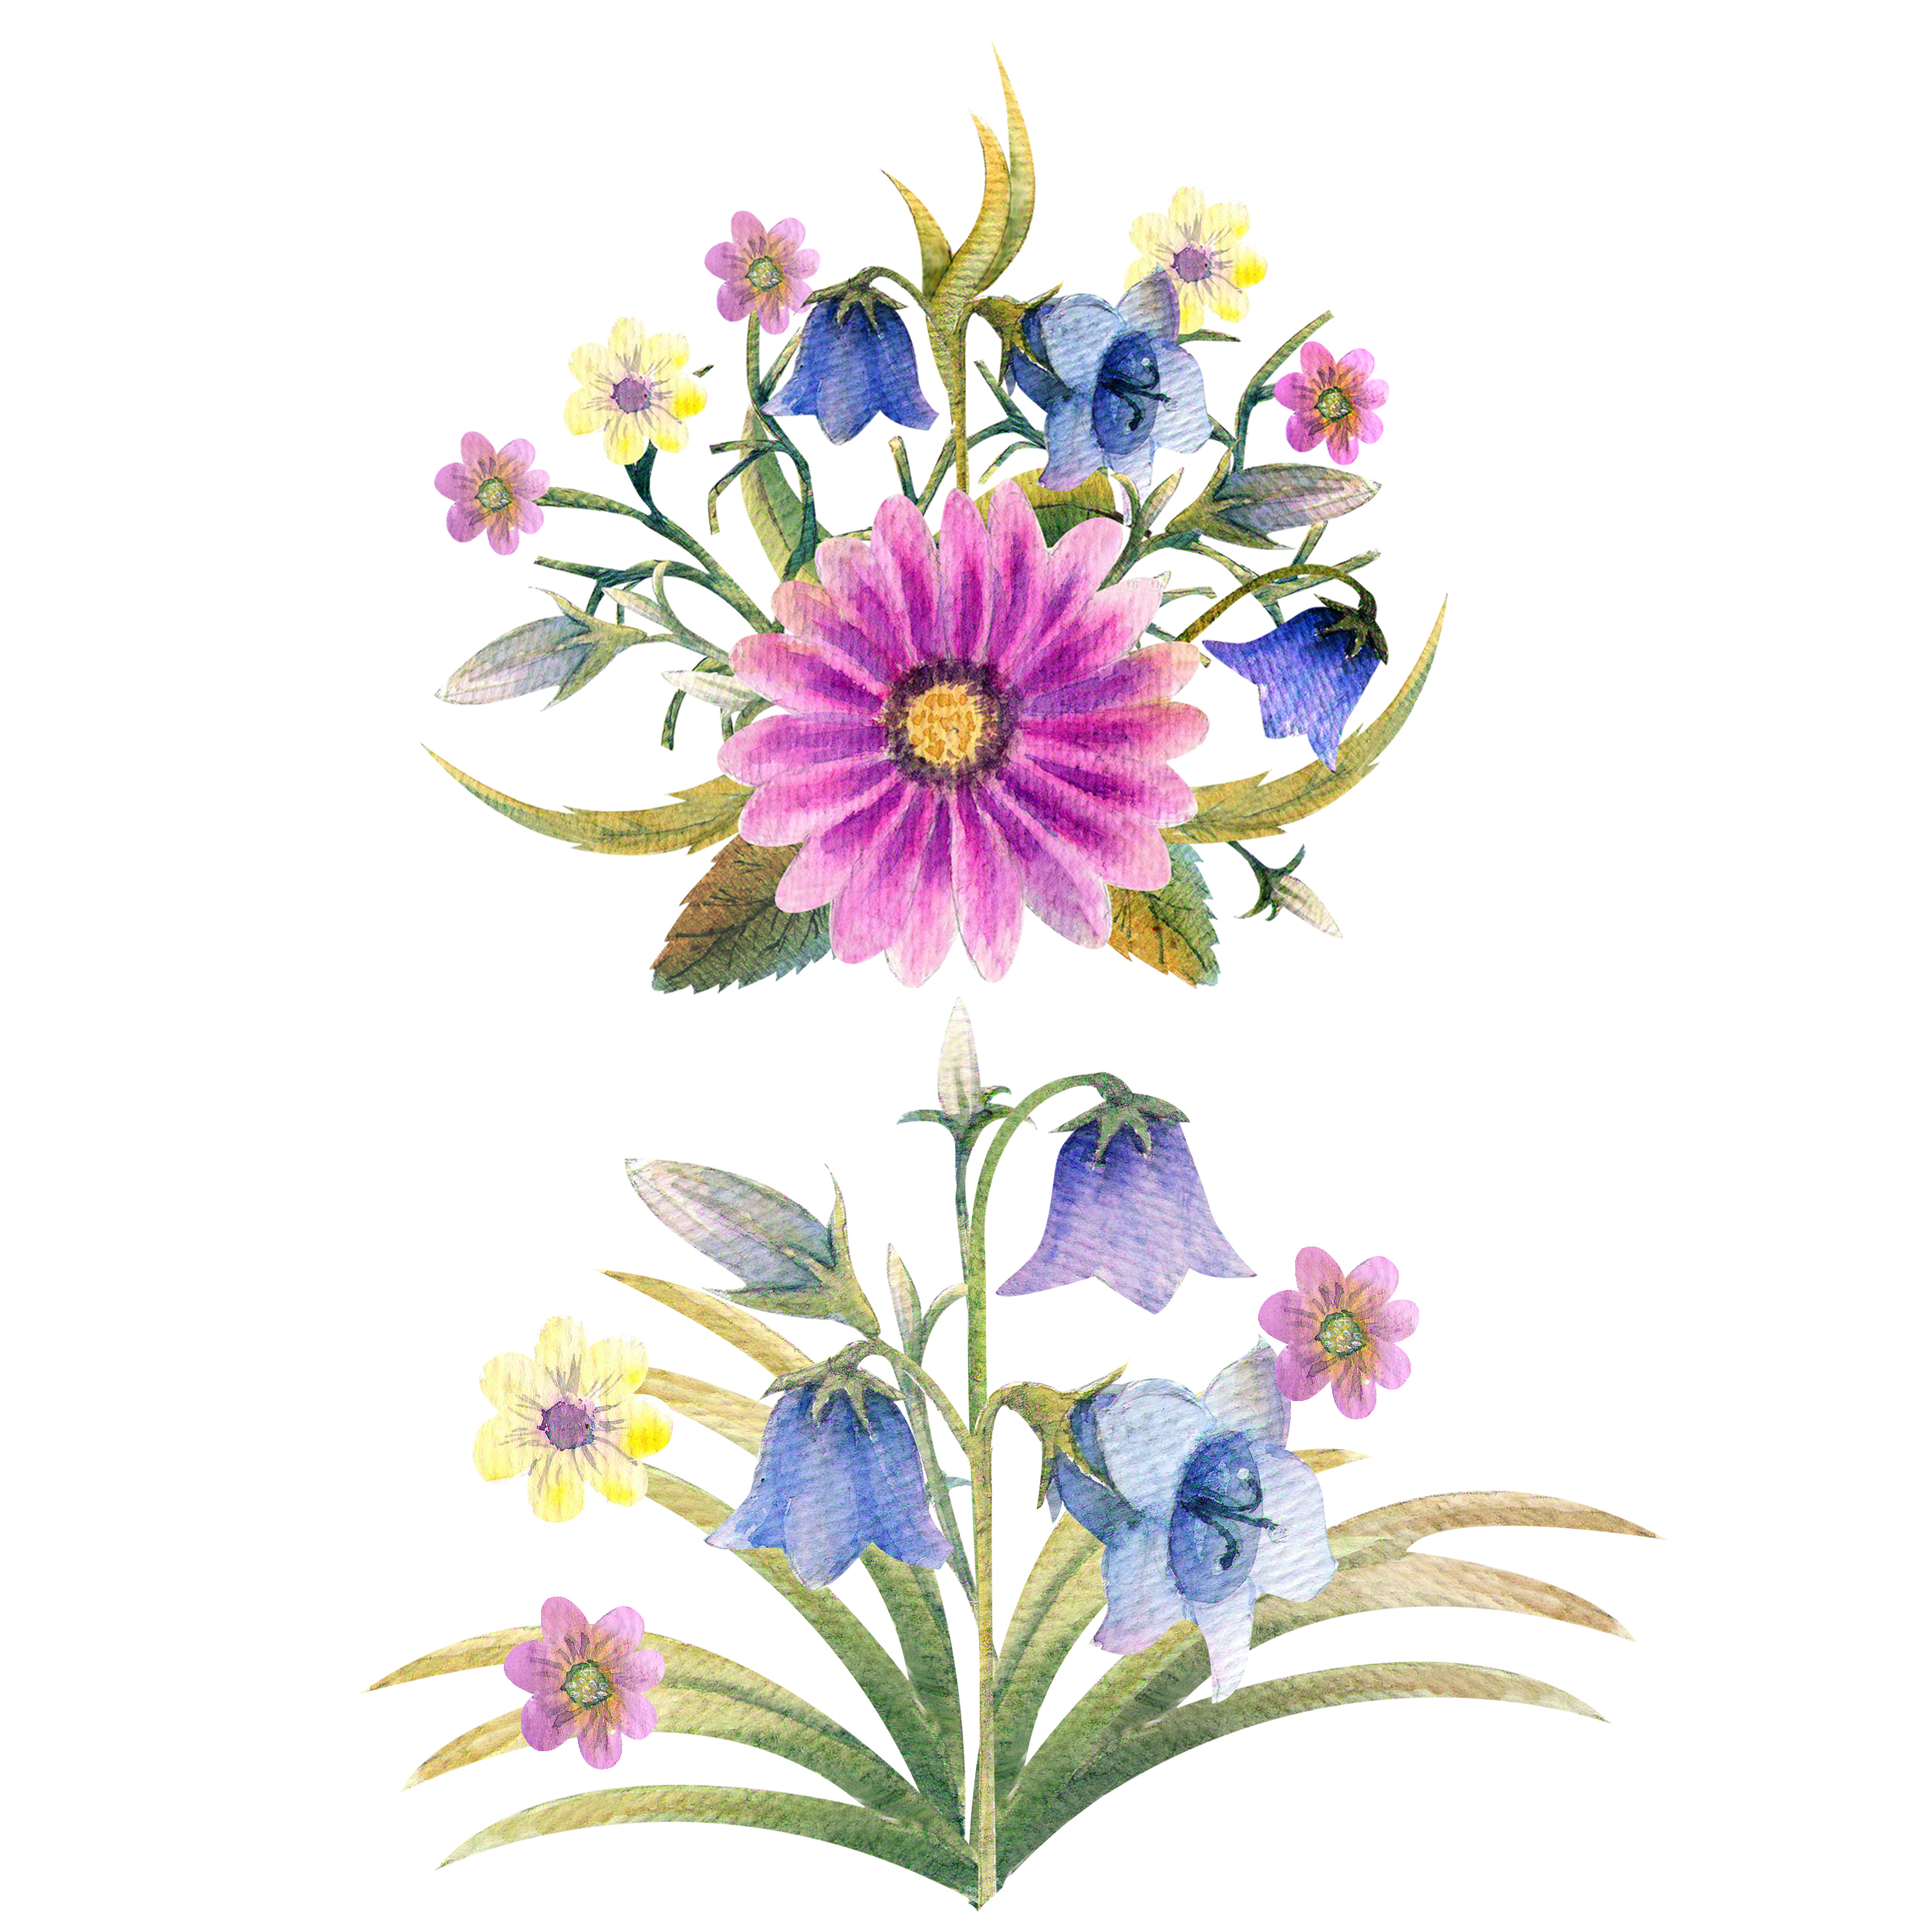 Wild flowers watercolor example image 7